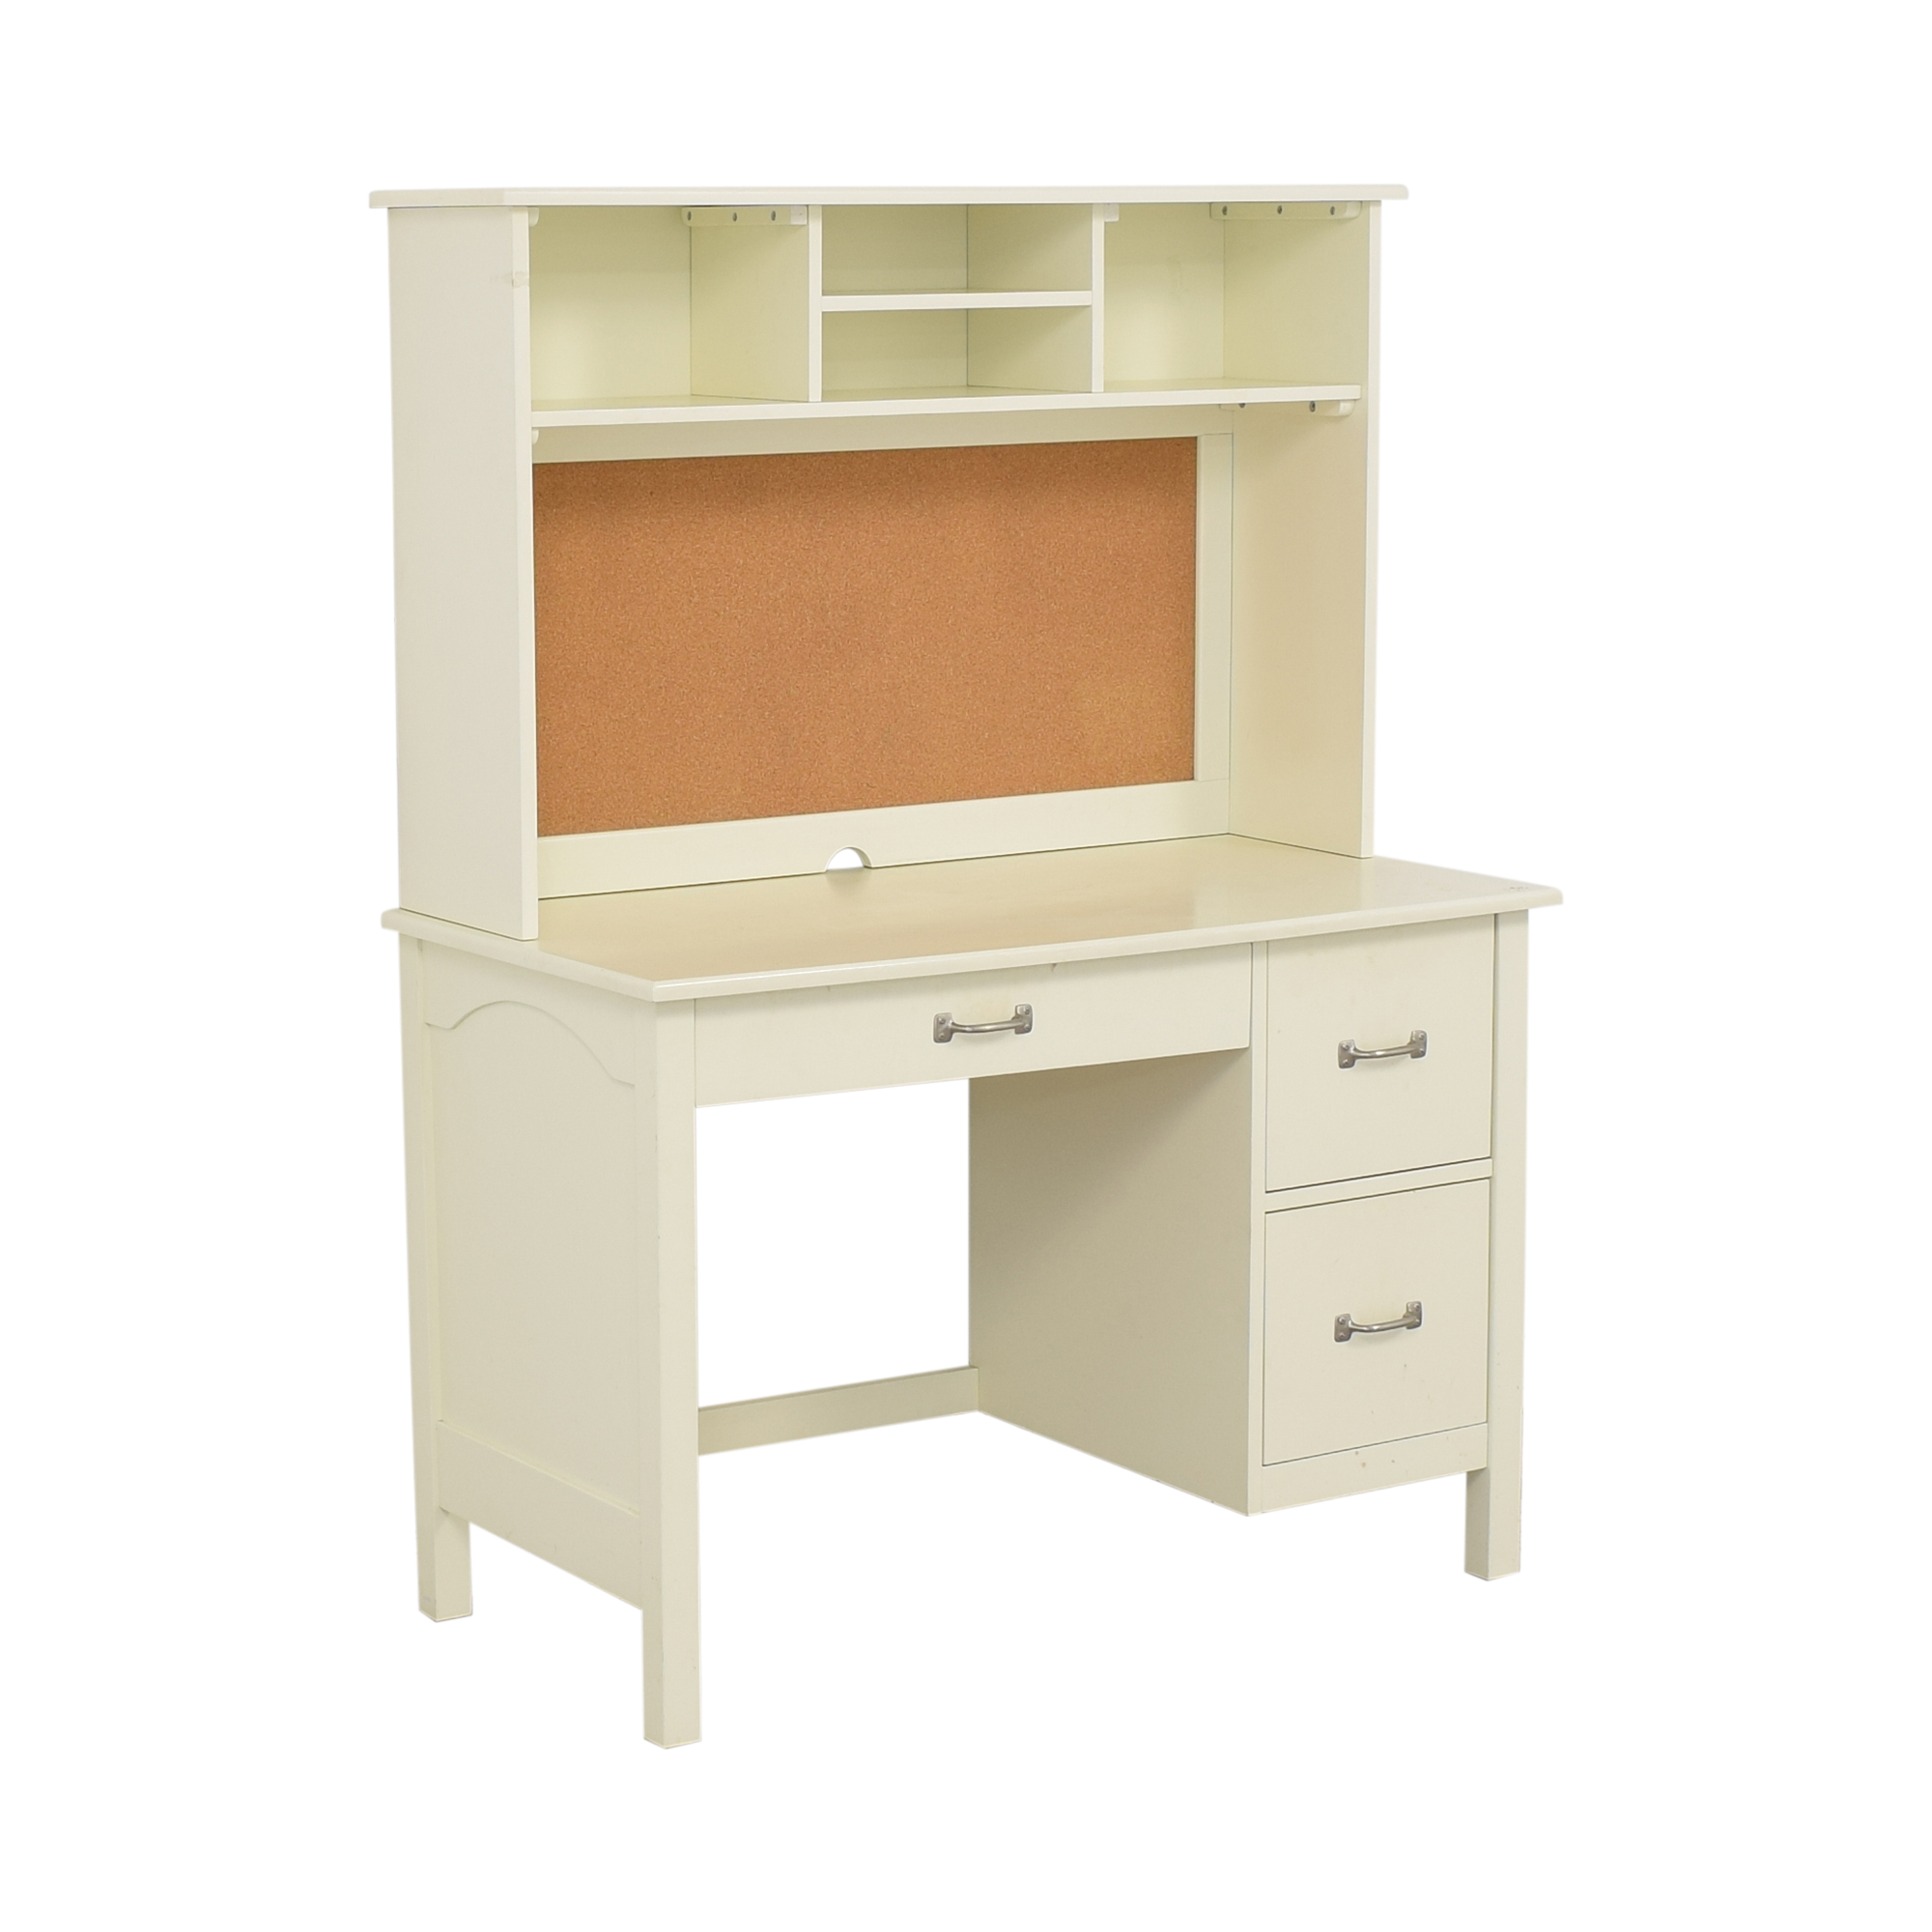 Pottery Barn Kids Pottery Barn Kids Kendall Desk with Hutch off white